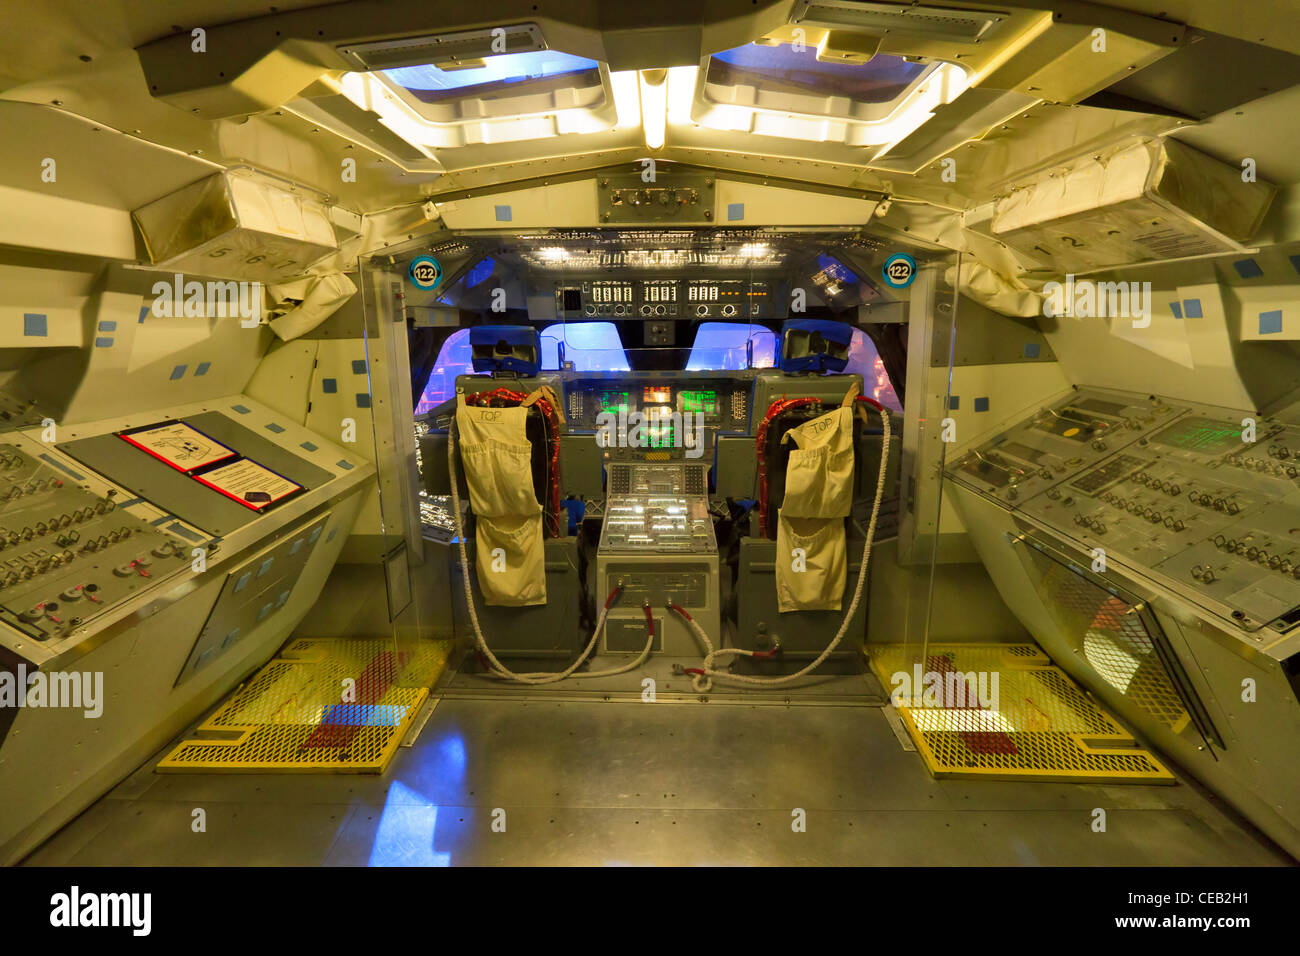 Replica of the flight deck of the Space Shuttle at the Johnson Space Center, Houston Stock Photo